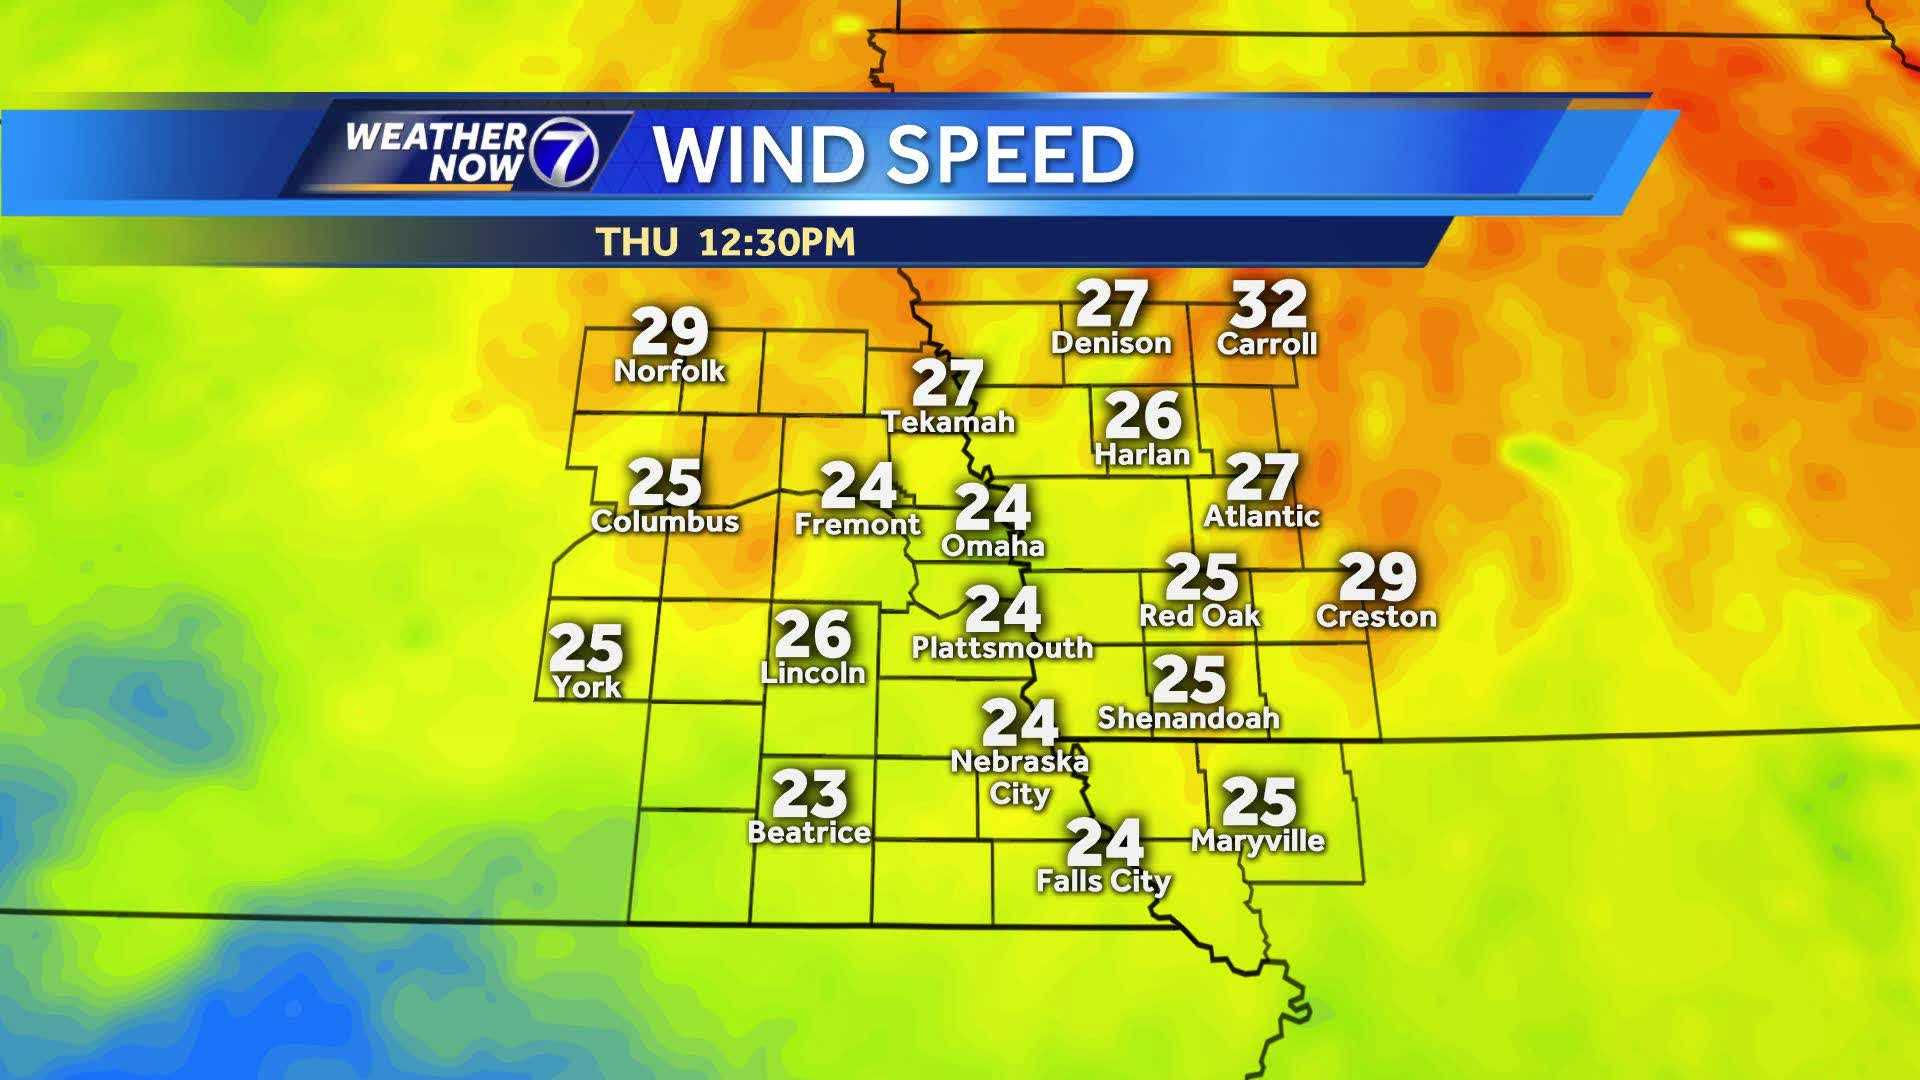 Wind speeds anticipated for Thursday